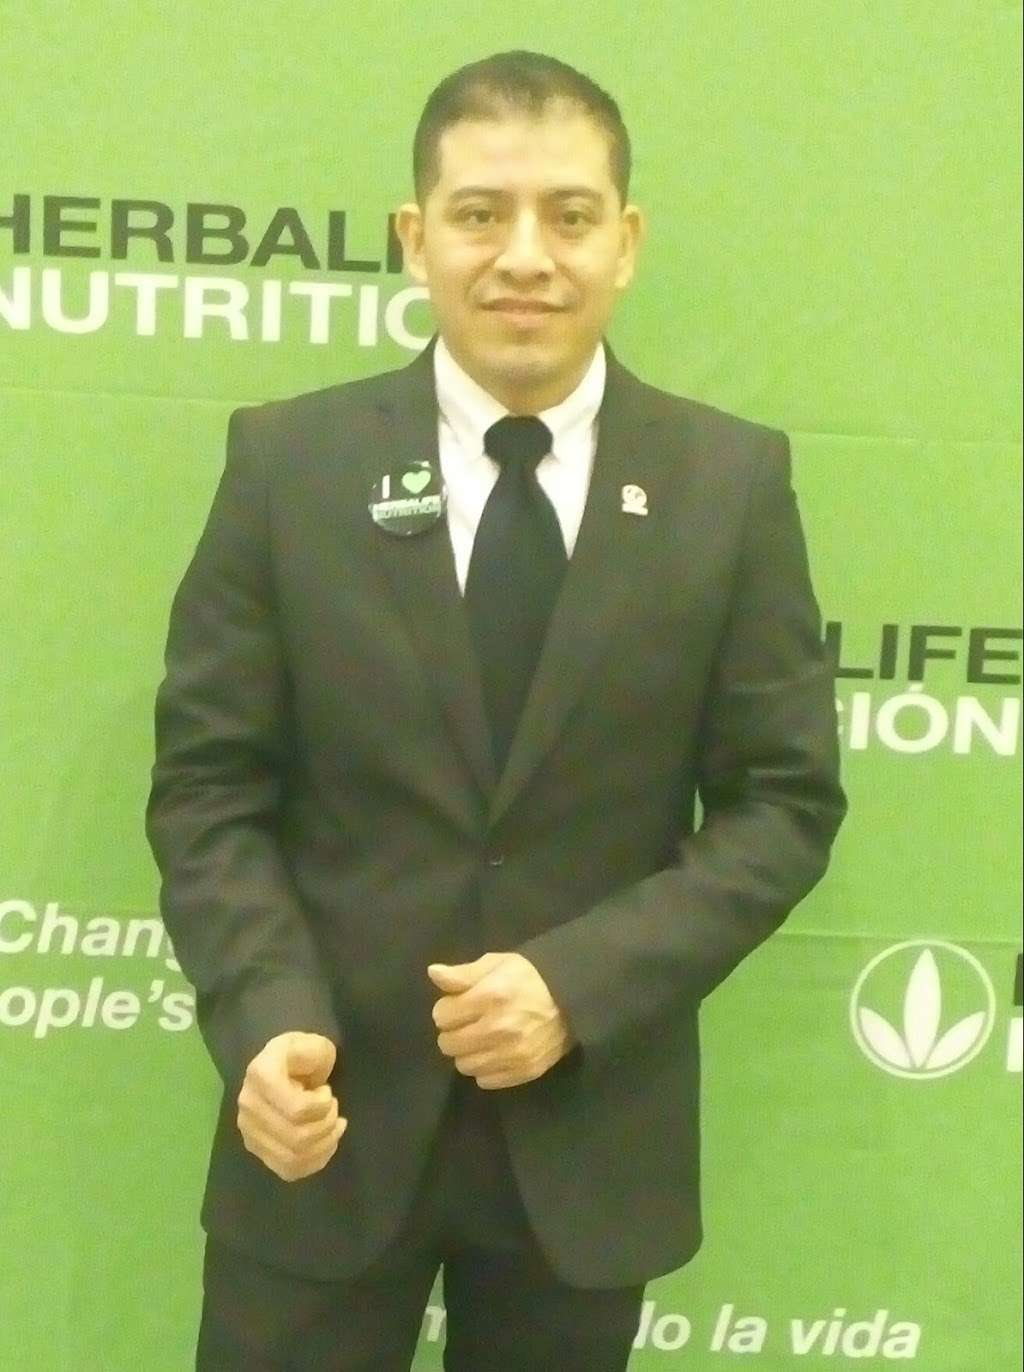 DISTRIBUDOR INDEPENDIENTE DE HERBALIFE PABLO HUEYOPA - store  | Photo 7 of 10 | Address: 462A 36th St, Brooklyn, NY 11232, USA | Phone: (718) 781-7329